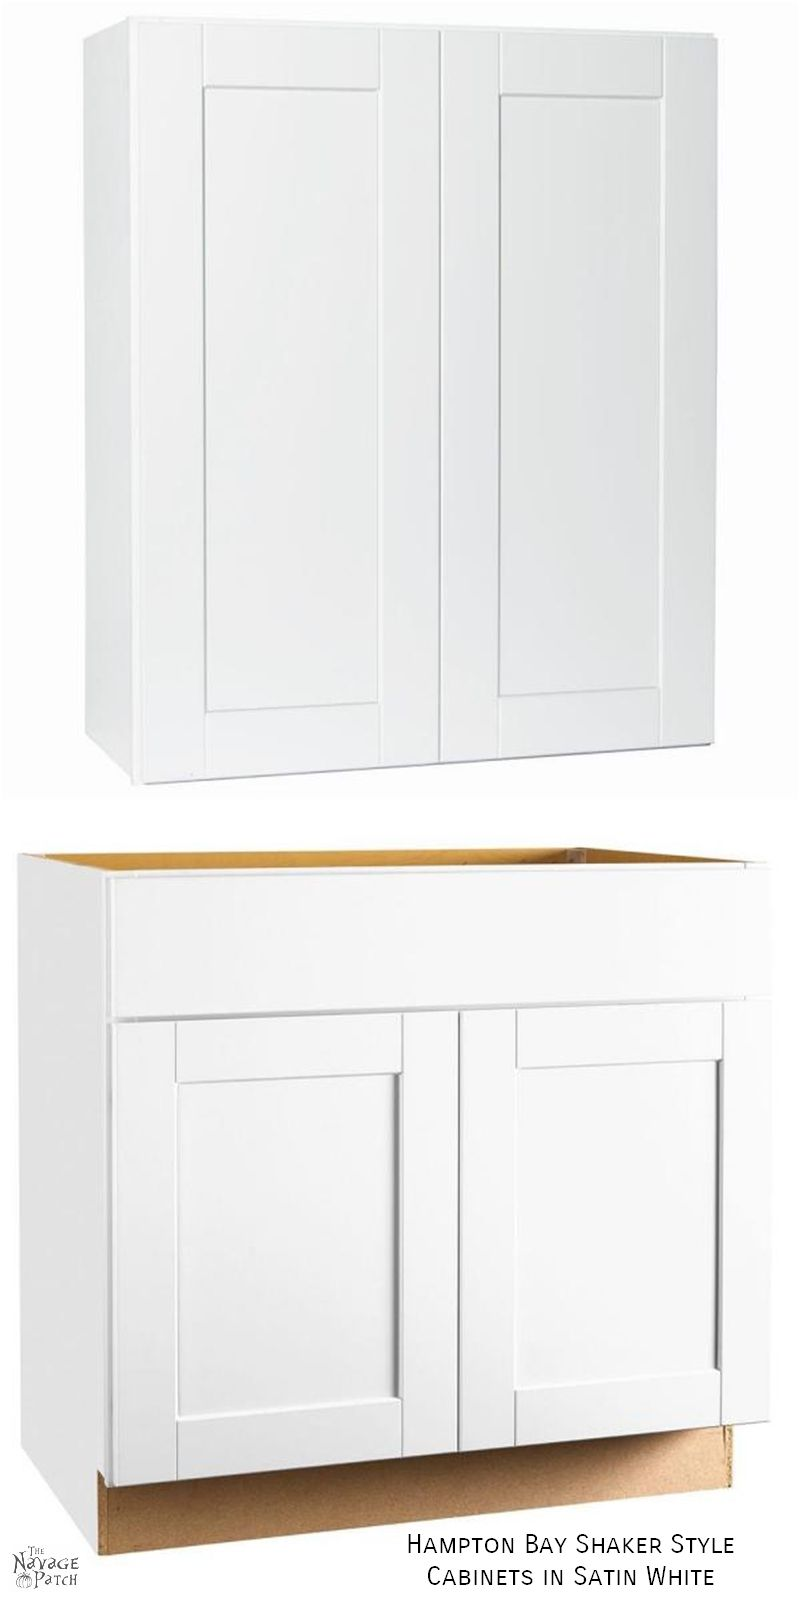 Laundry Room Remodel Plan - TheNavagePatch.com